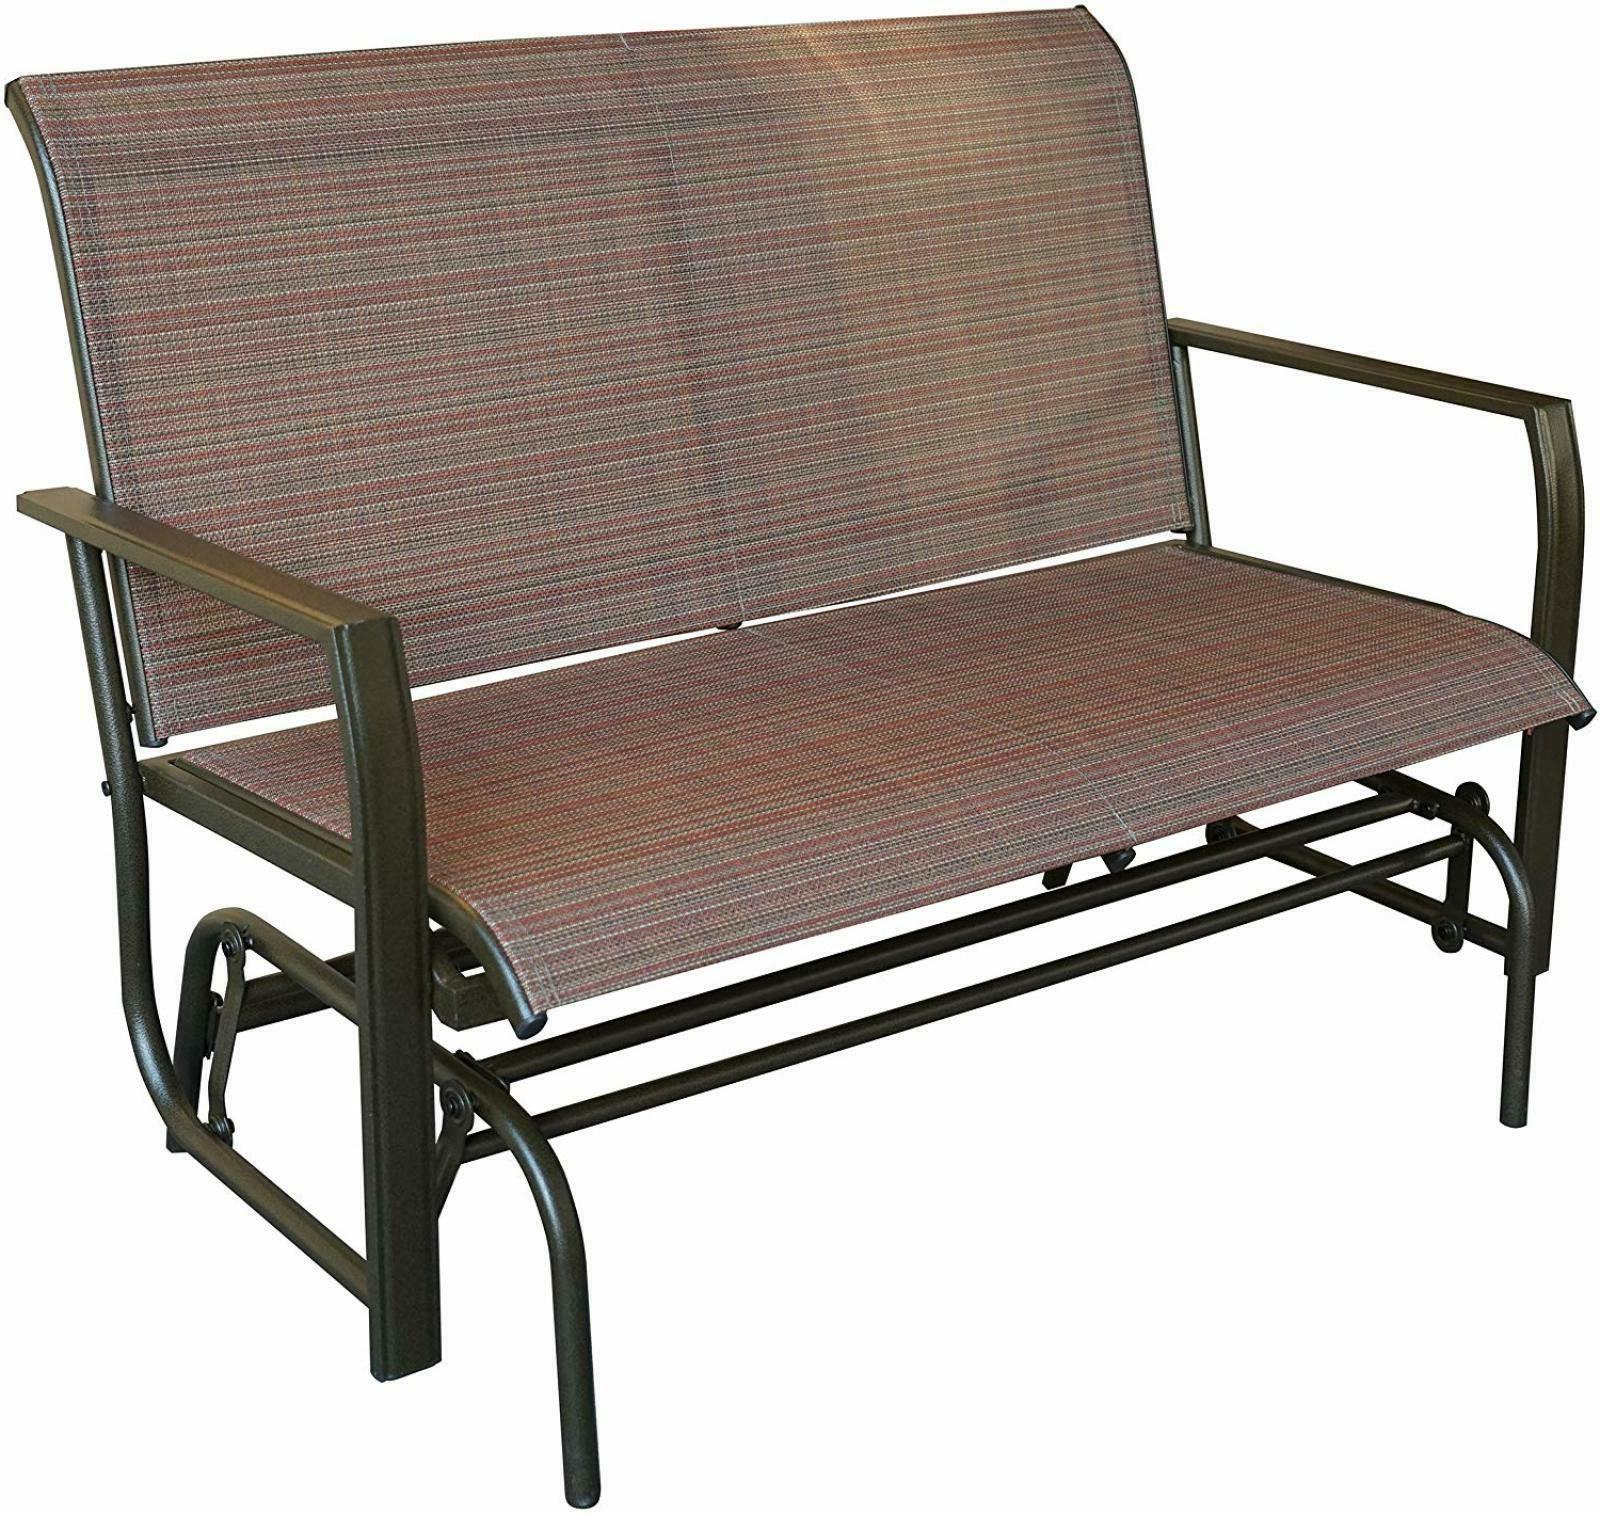 Love Seat Swing Bench For Patio Textile And Sturdy Frame Glider Rocker Tan Brown In Fashionable Rocking Love Seats Glider Swing Benches With Sturdy Frame (View 9 of 30)